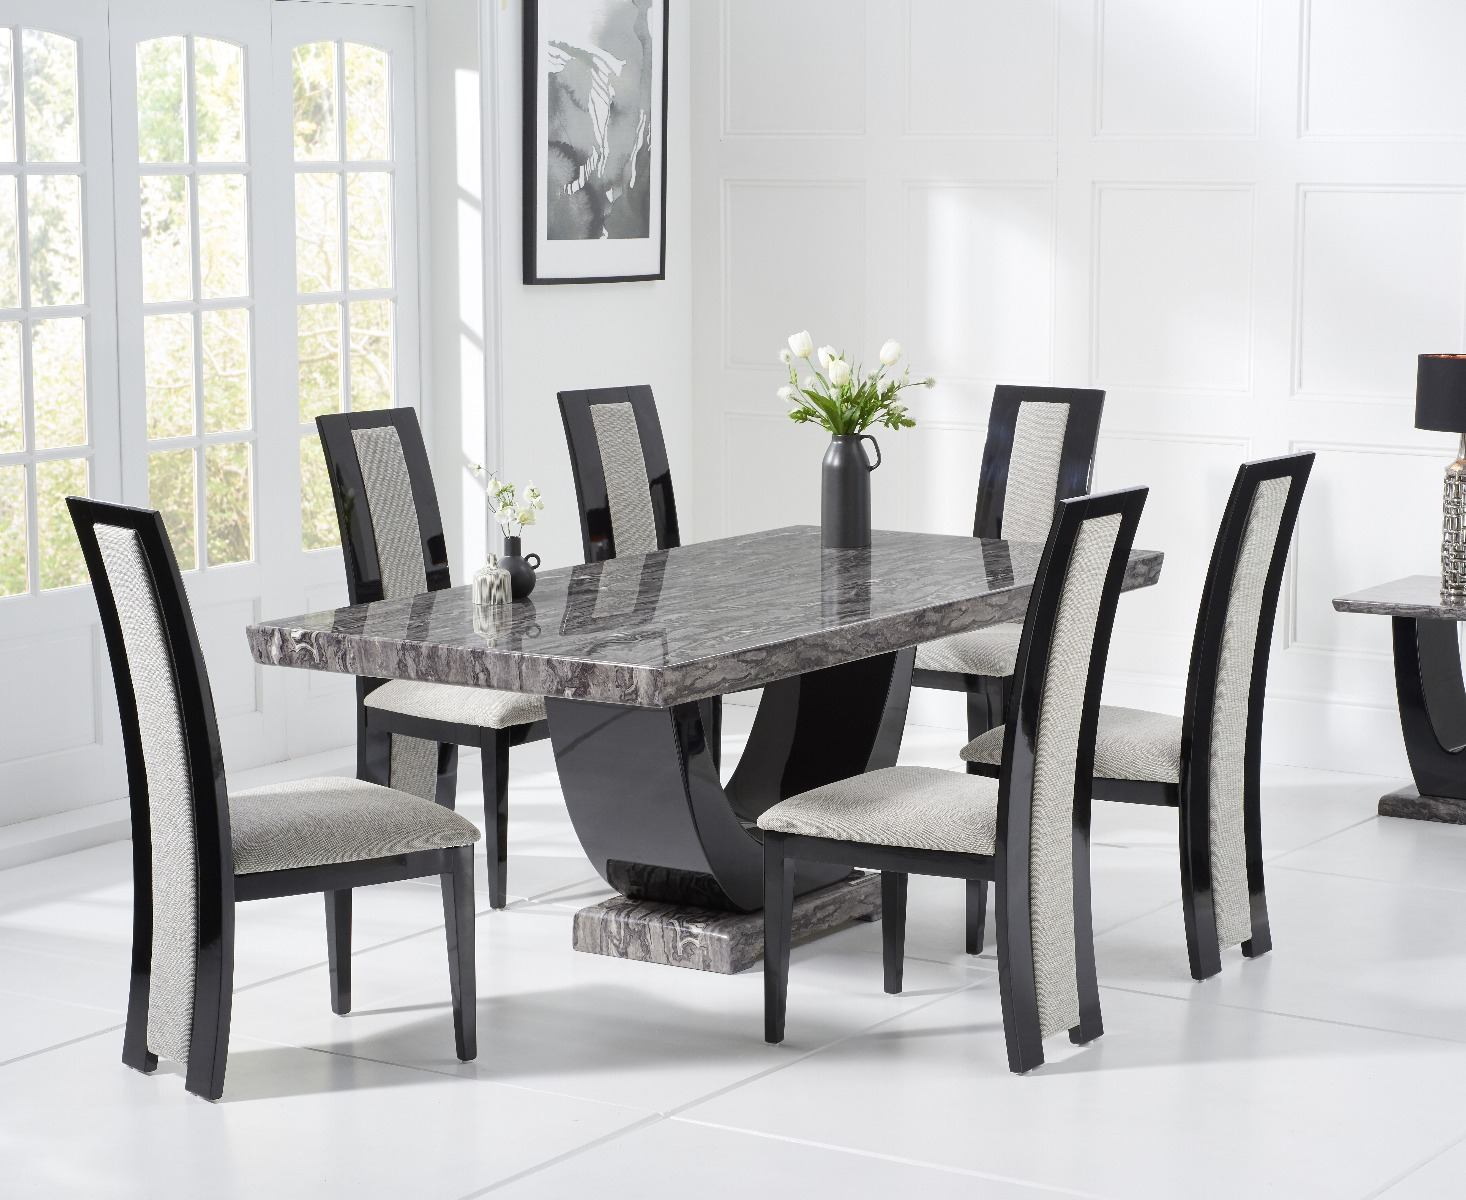 Raphael 170cm Dark Grey Pedestal Marble Dining Table with Raphael Chairs